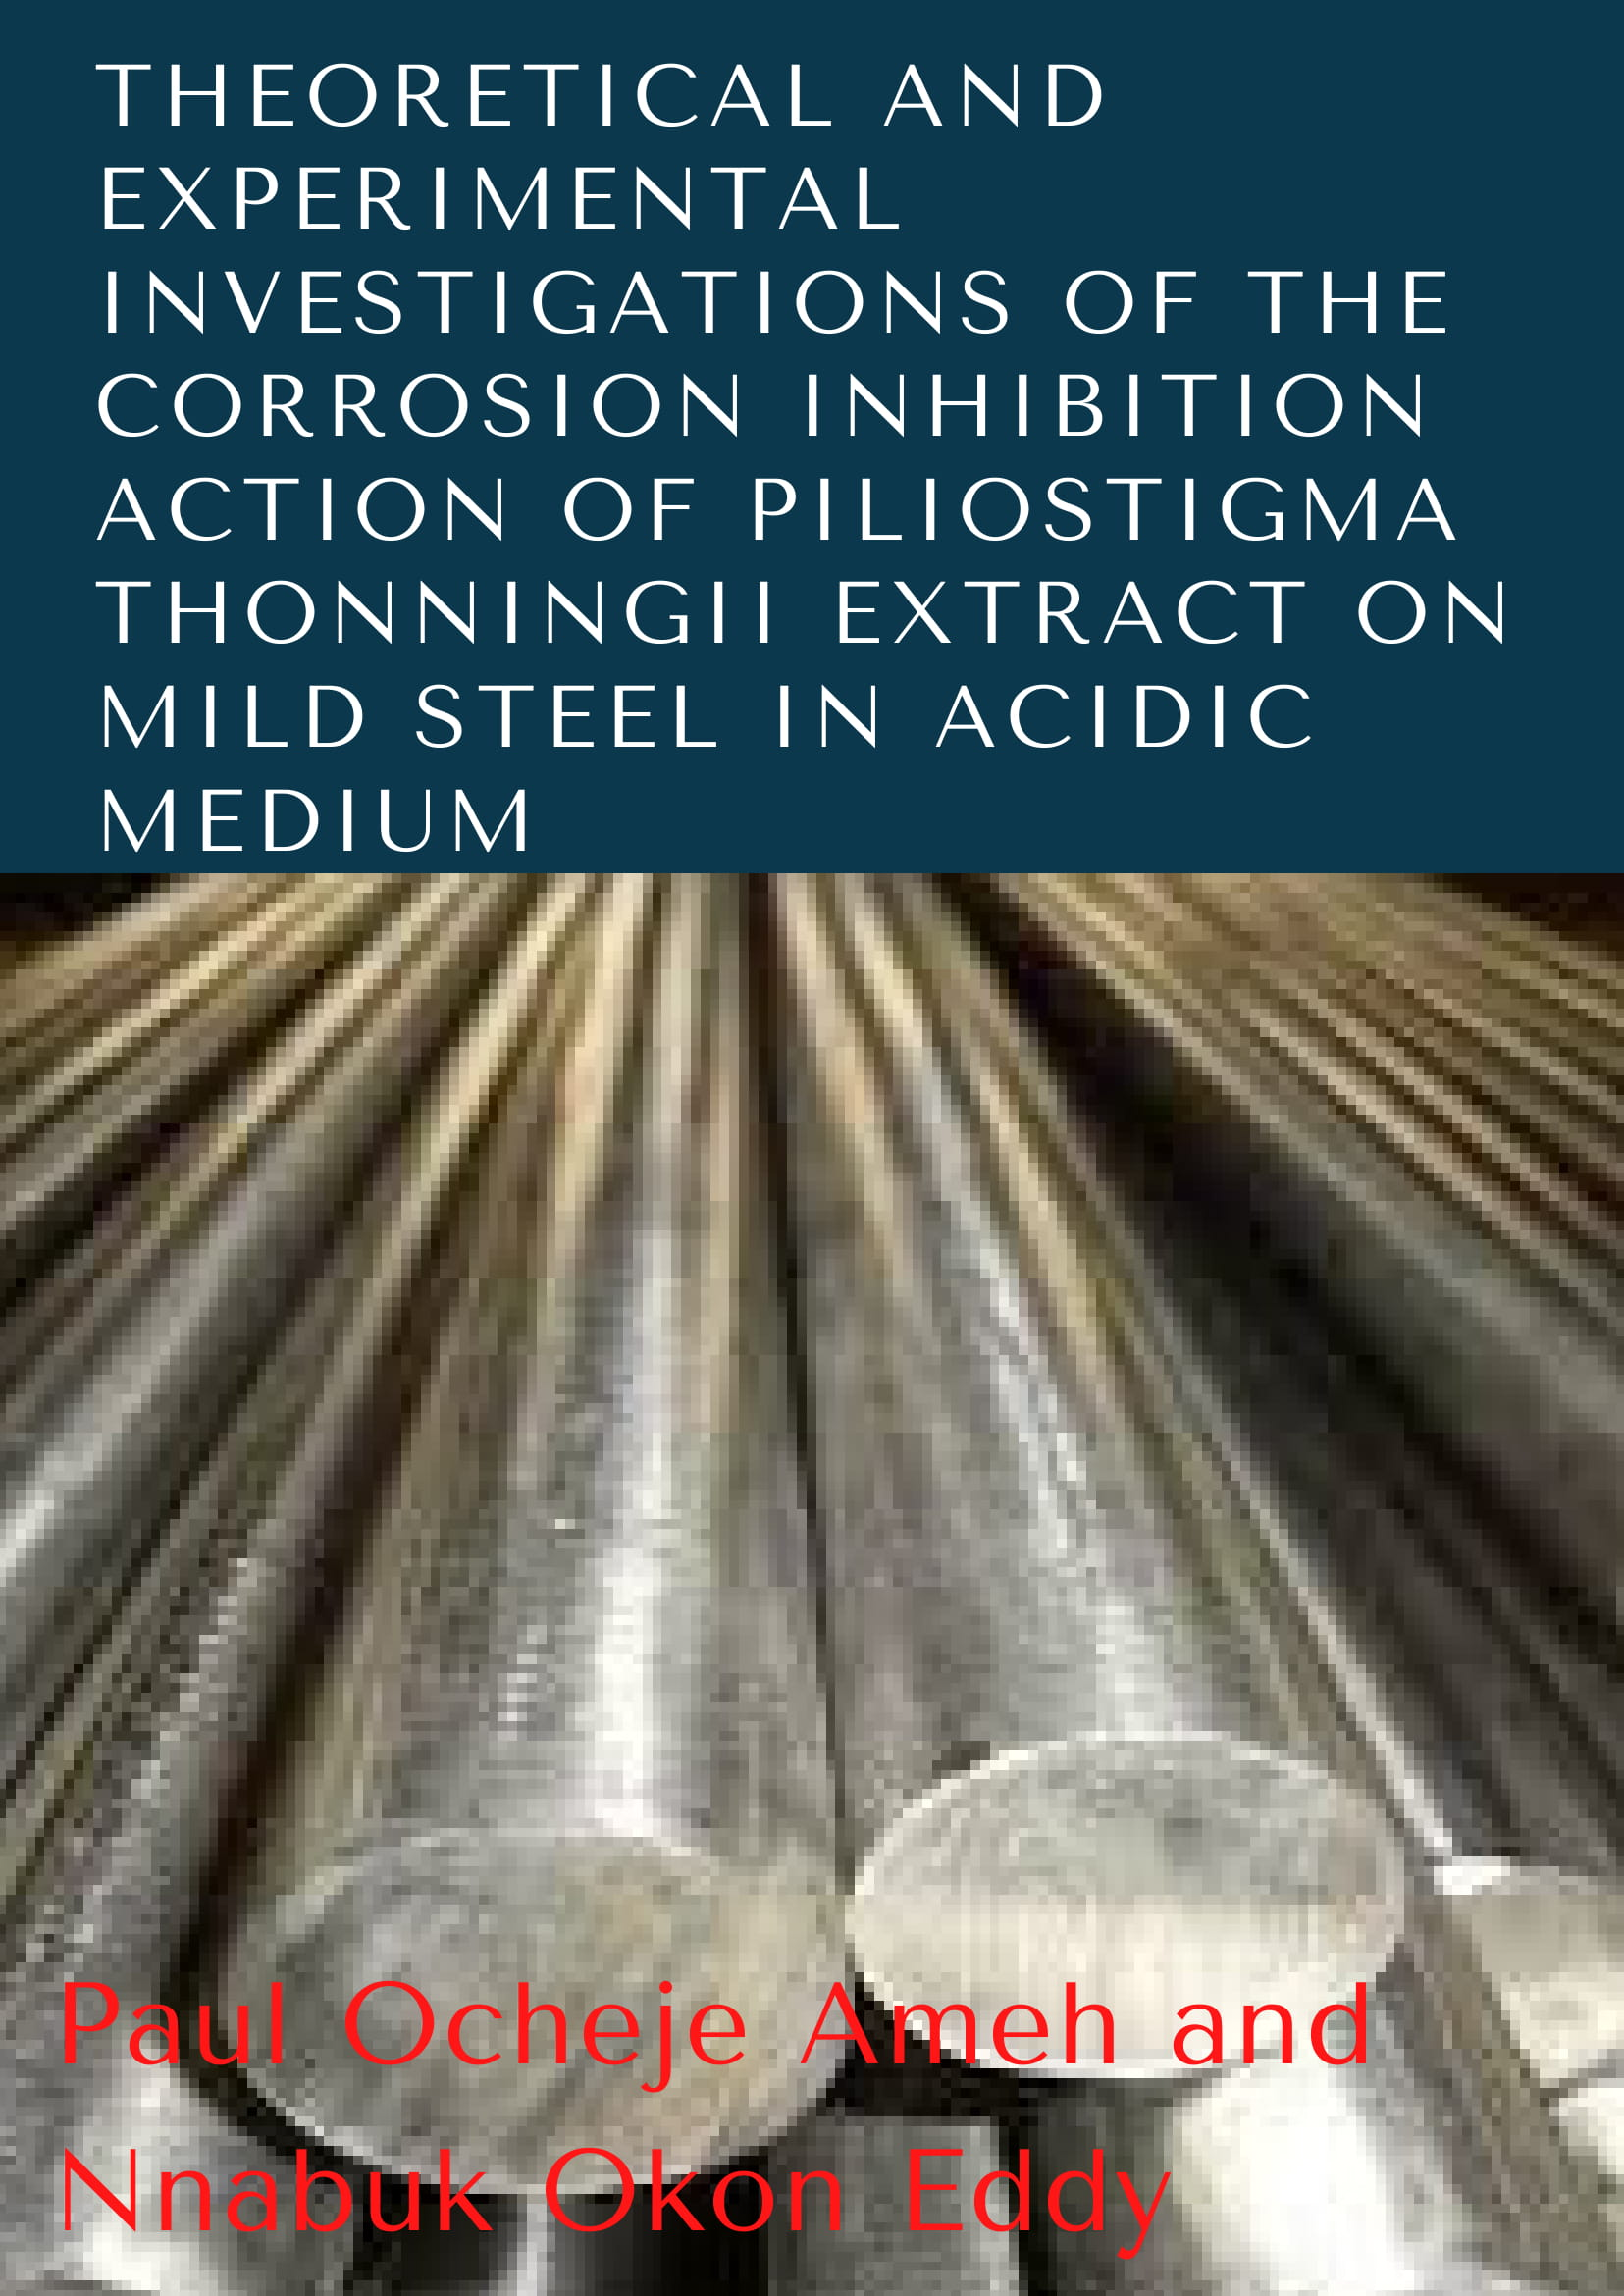 Theoretical and Experimental Investigations of the Corrosion Inhibition Action of Piliostigma Thonningii Extract on Mild Steel in Acidic Medium image